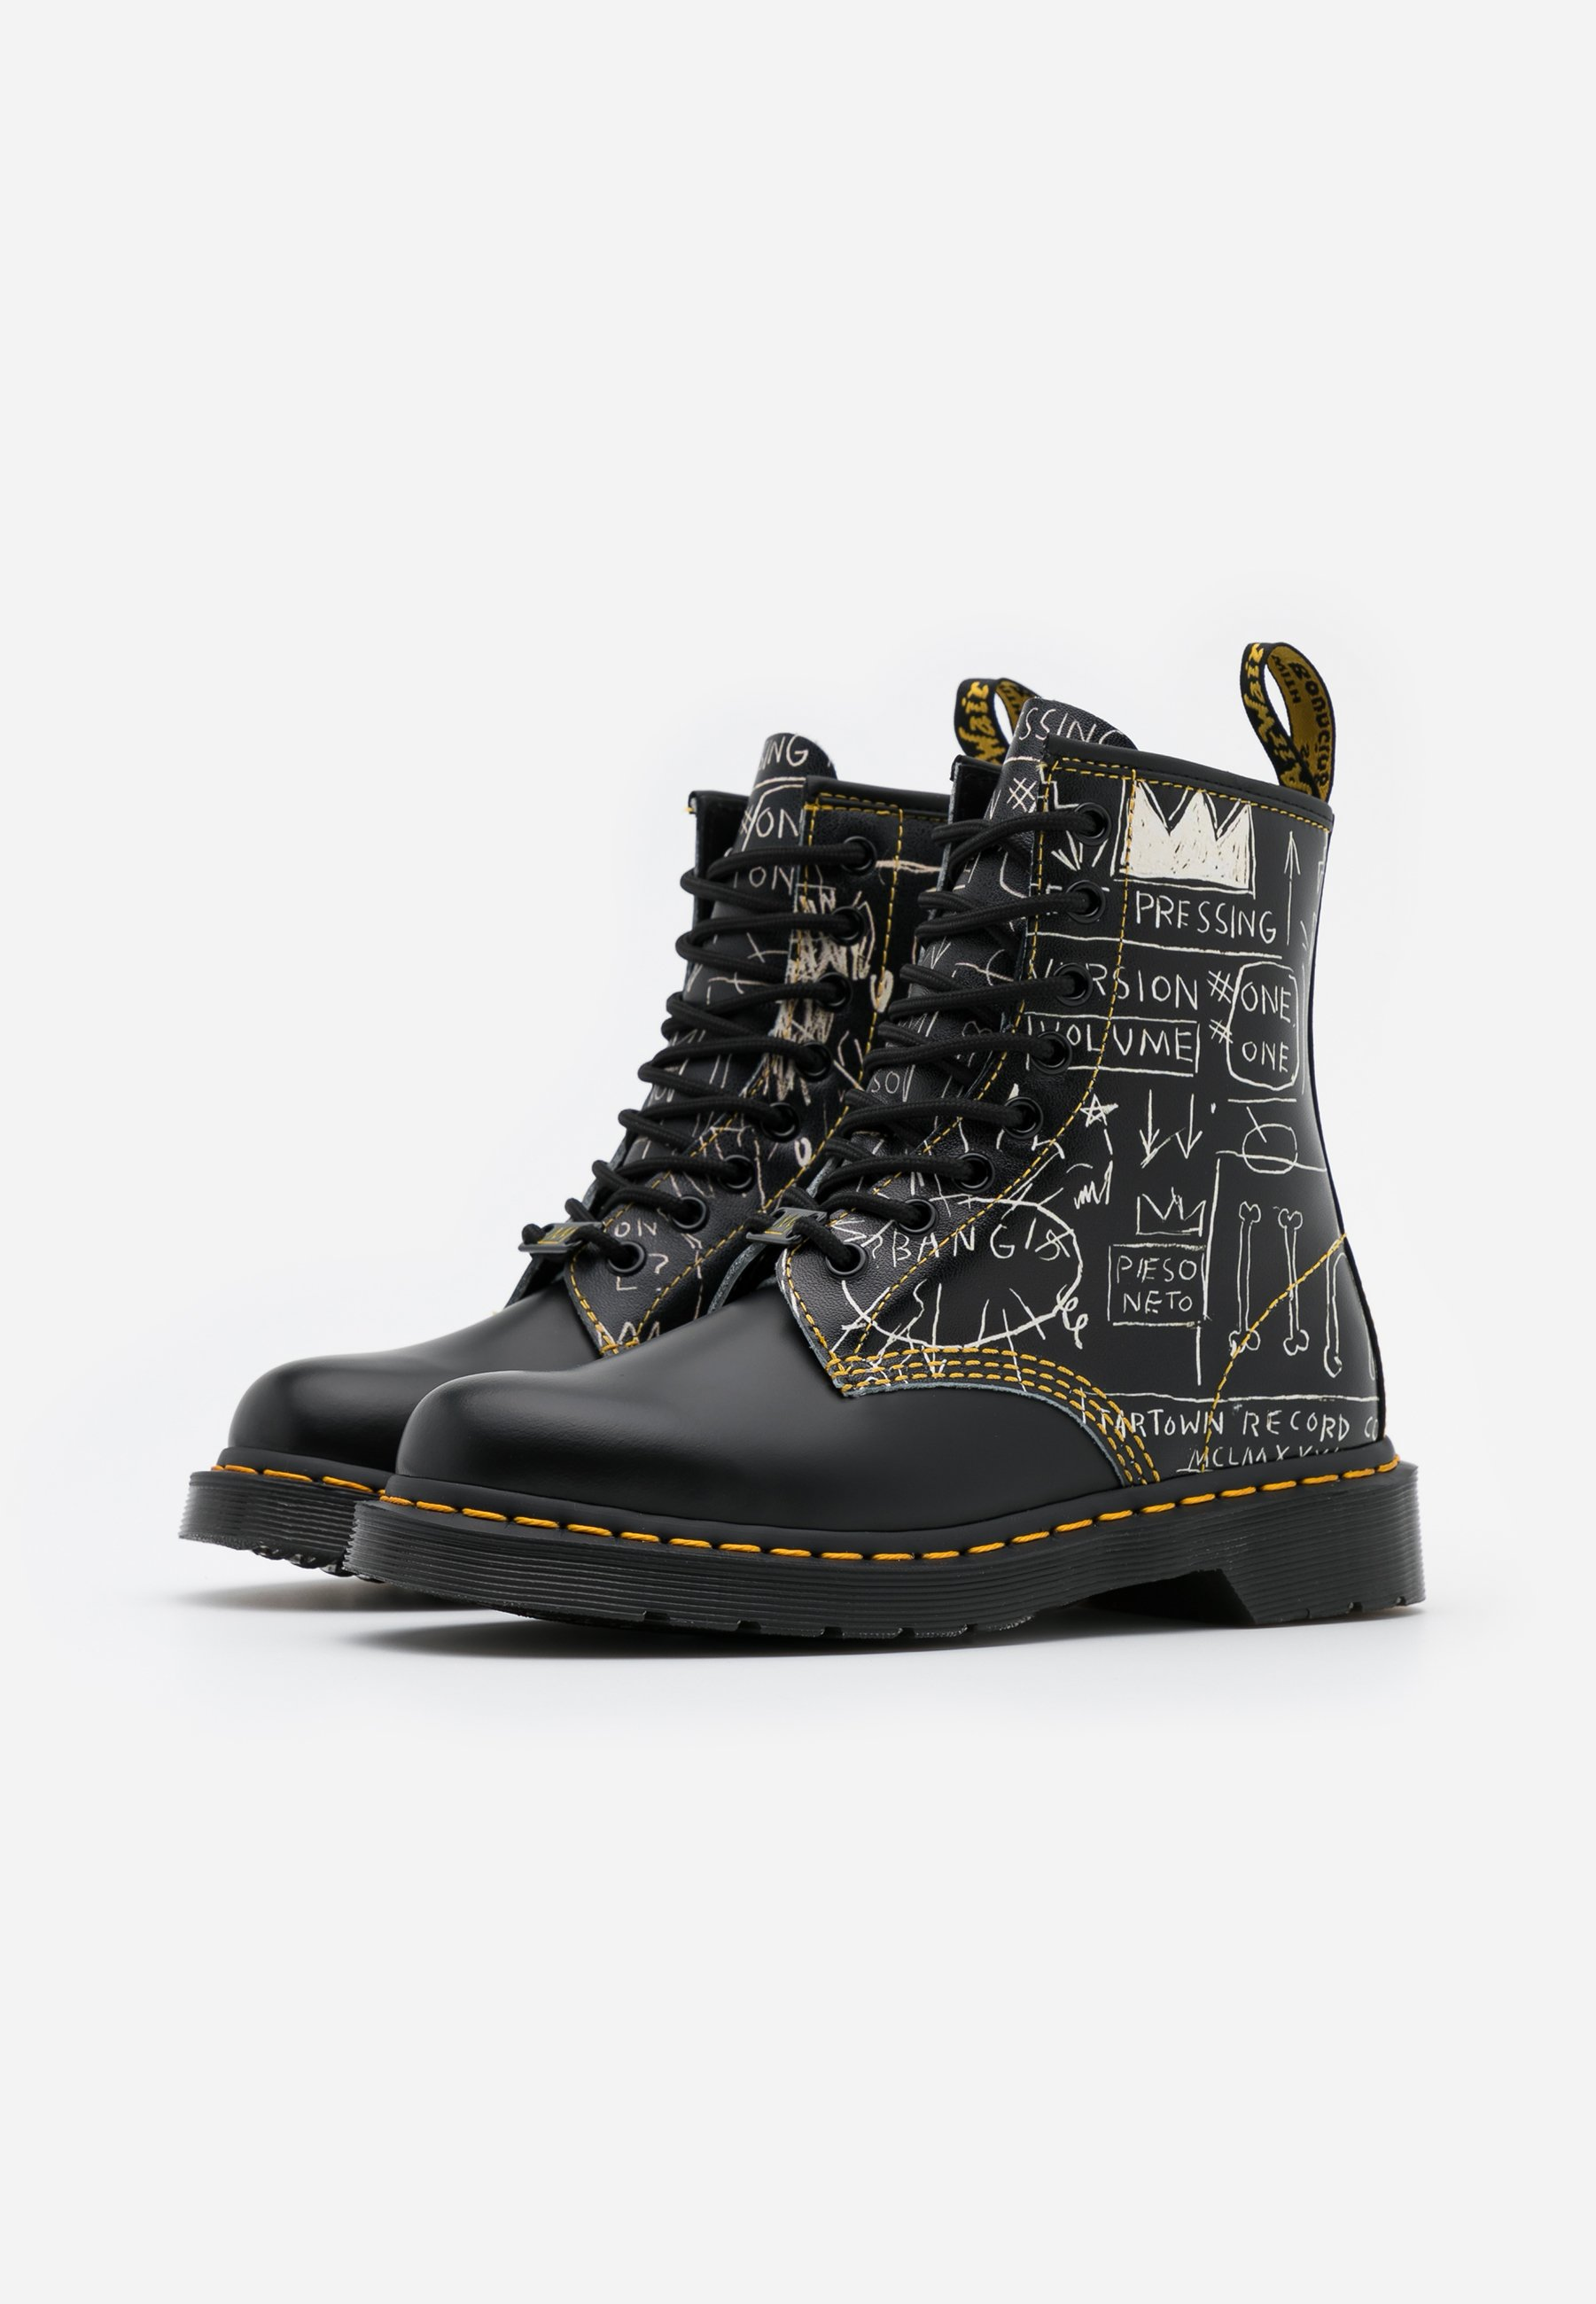 1460 BASQUIAT Veterboots whiteblack smooth